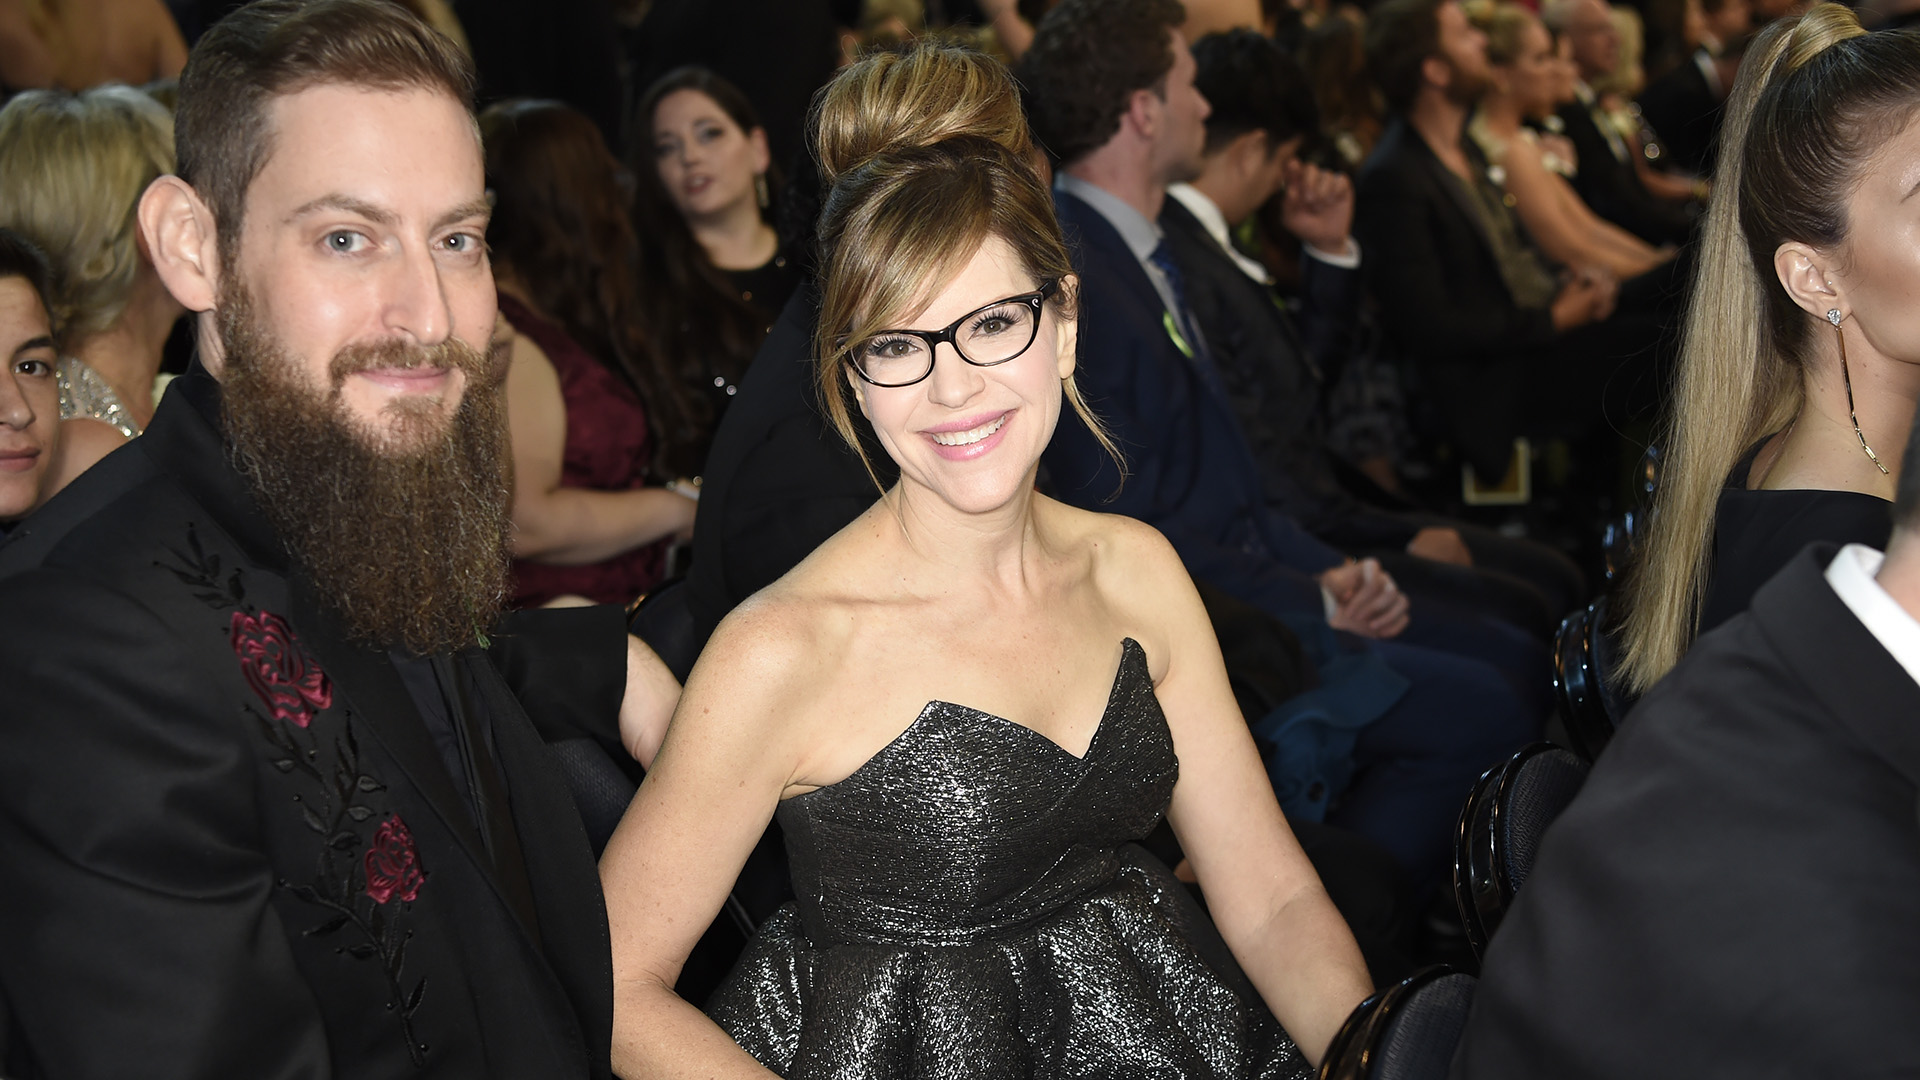 Lisa Loeb, who took home a 2018 GRAMMY for Best Children's Album, smiles alongside her husband, Roey Hershkovitz.